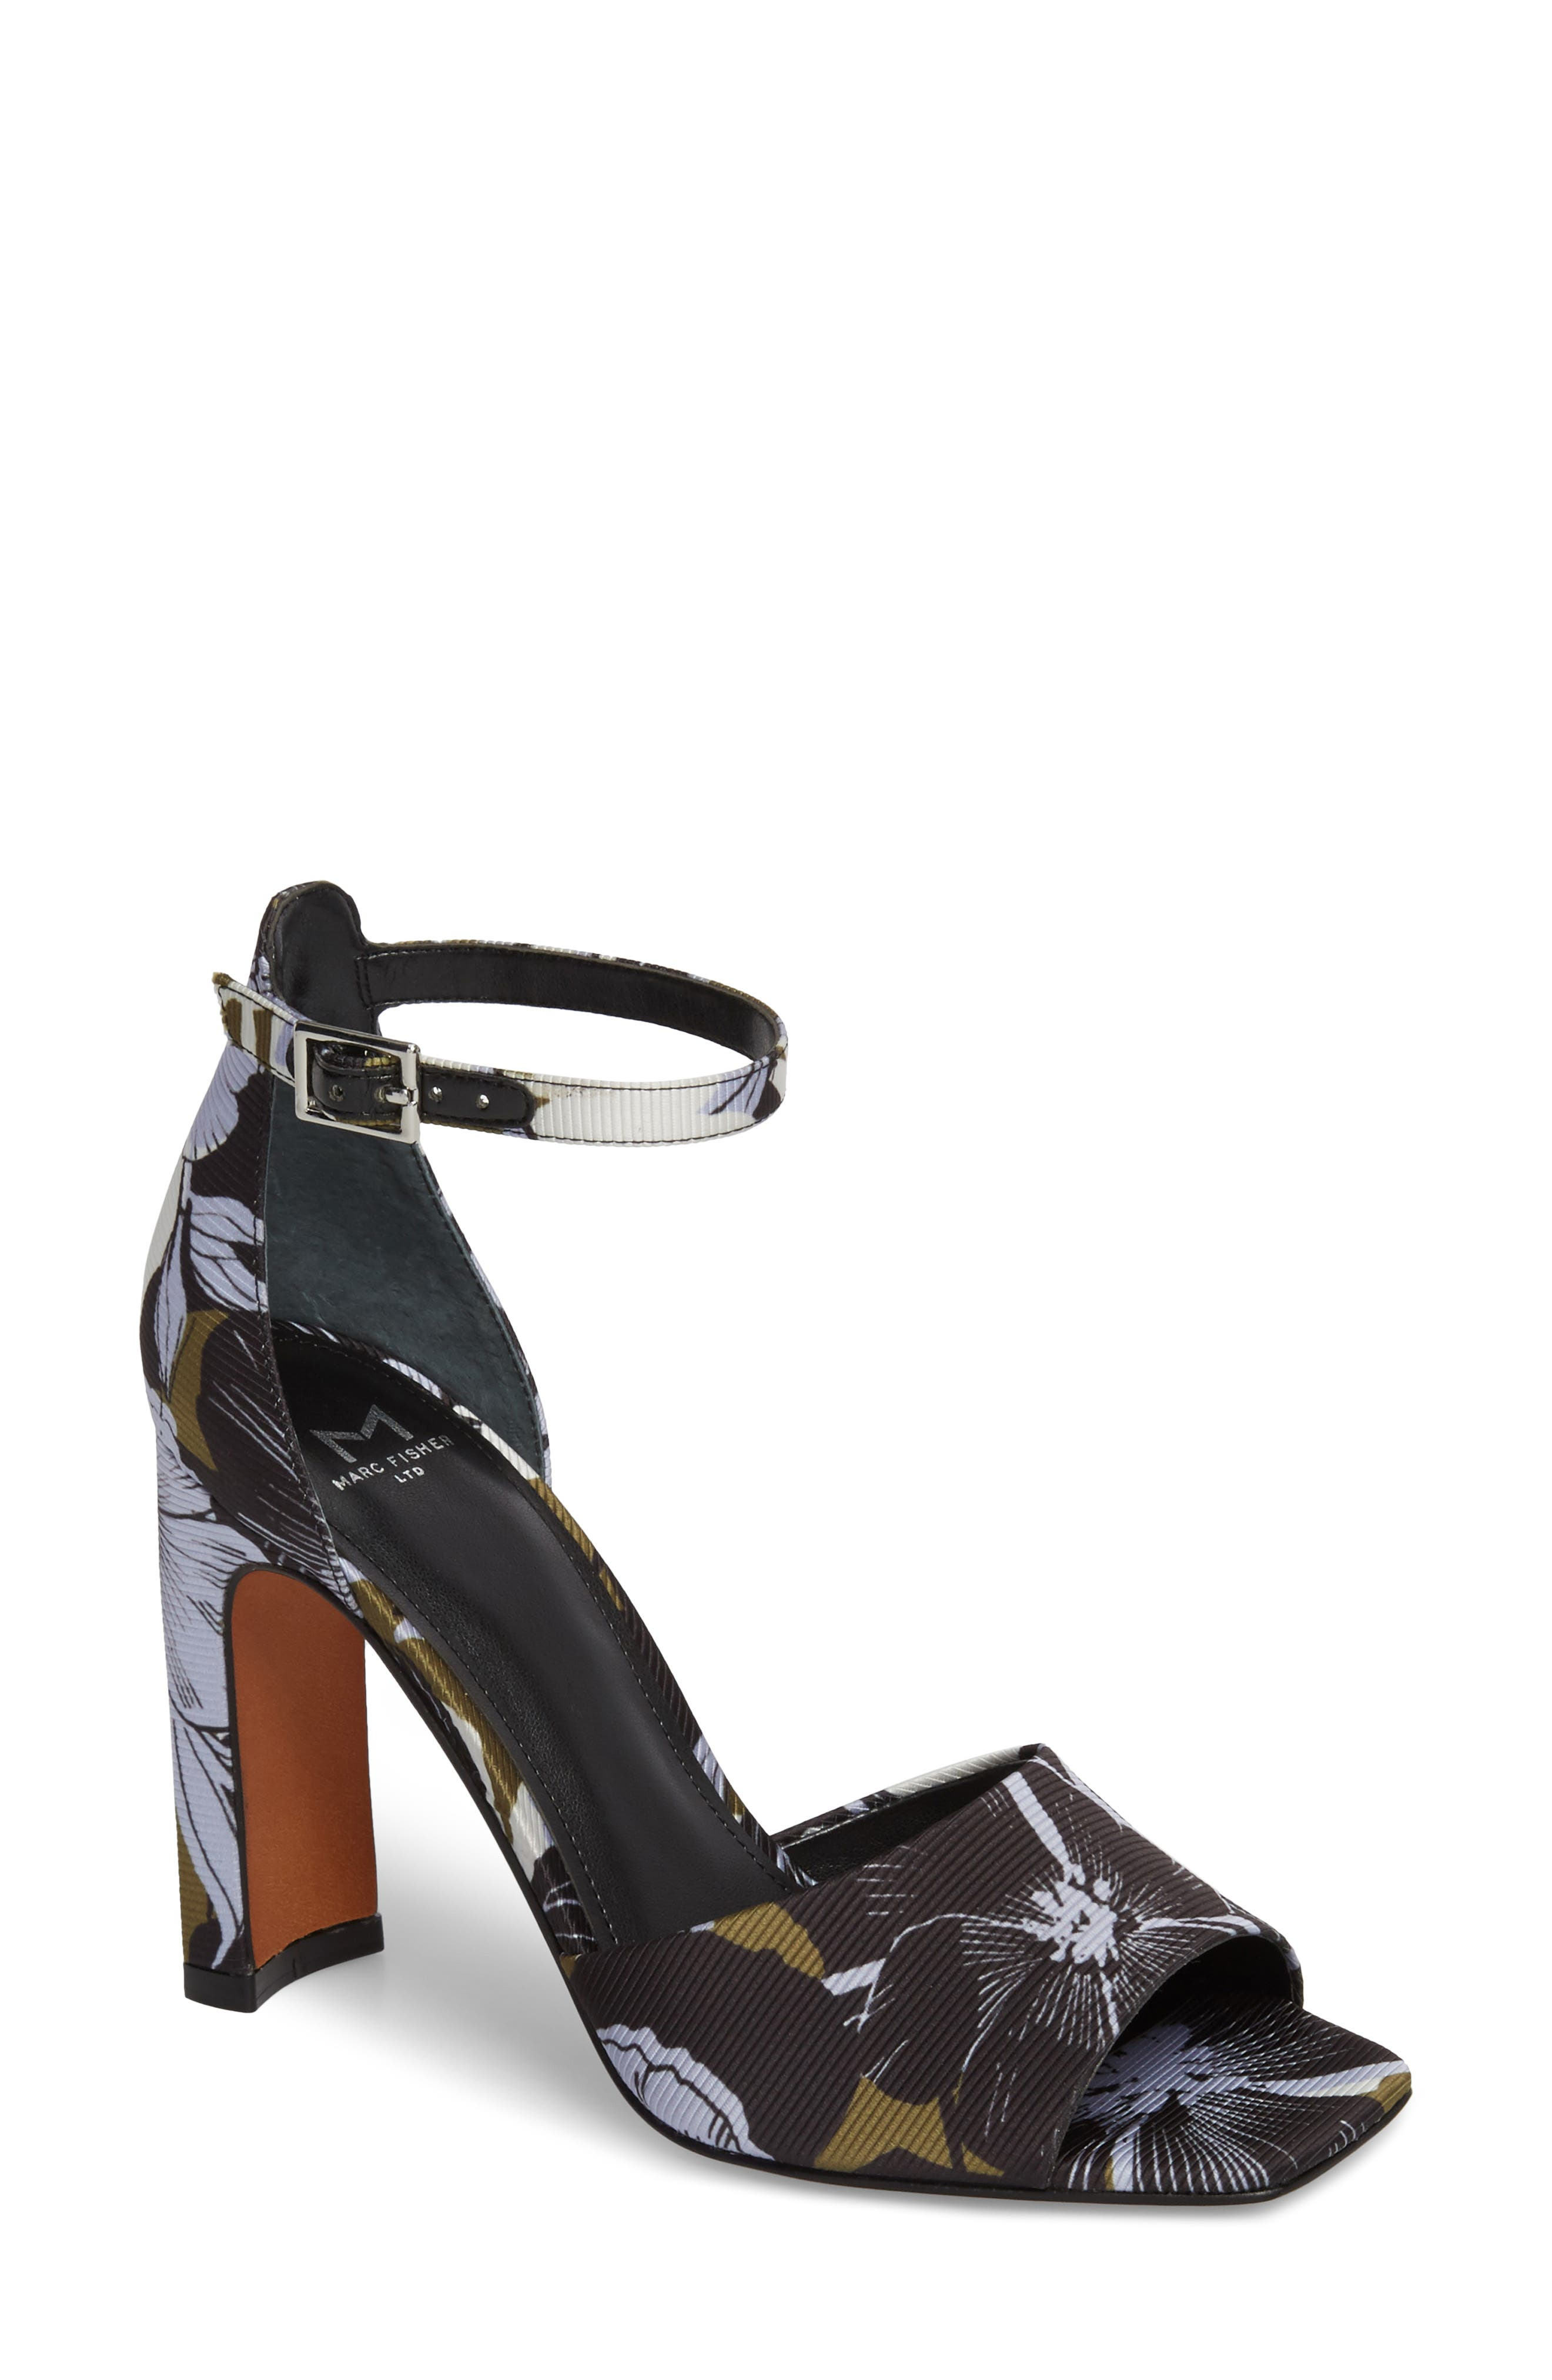 Harlin Ankle Strap Sandal,                             Main thumbnail 1, color,                             001